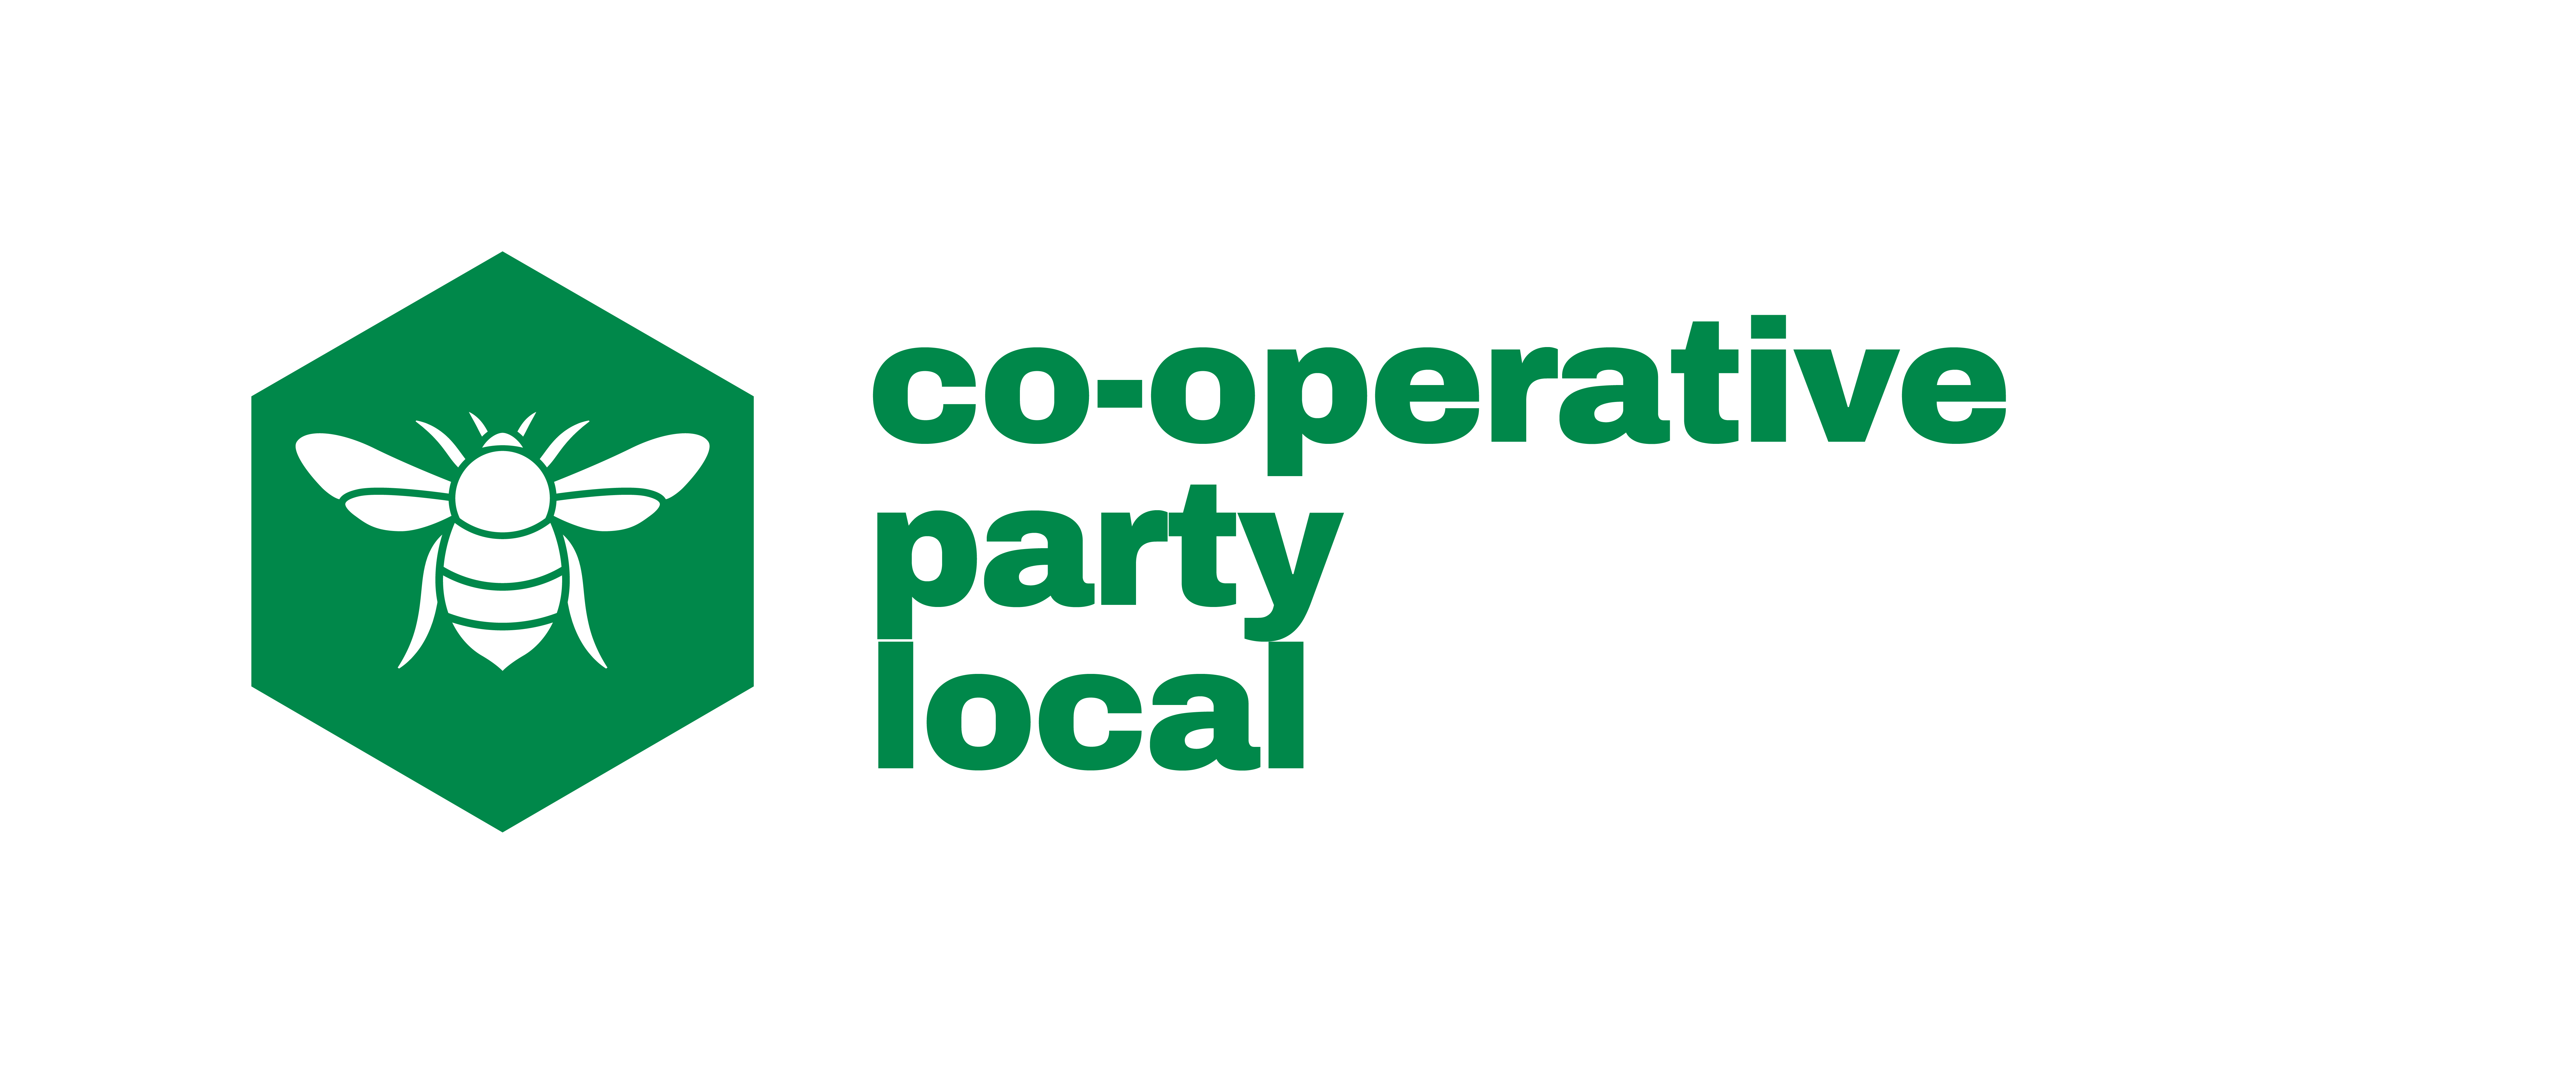 coopparty-local-green-png